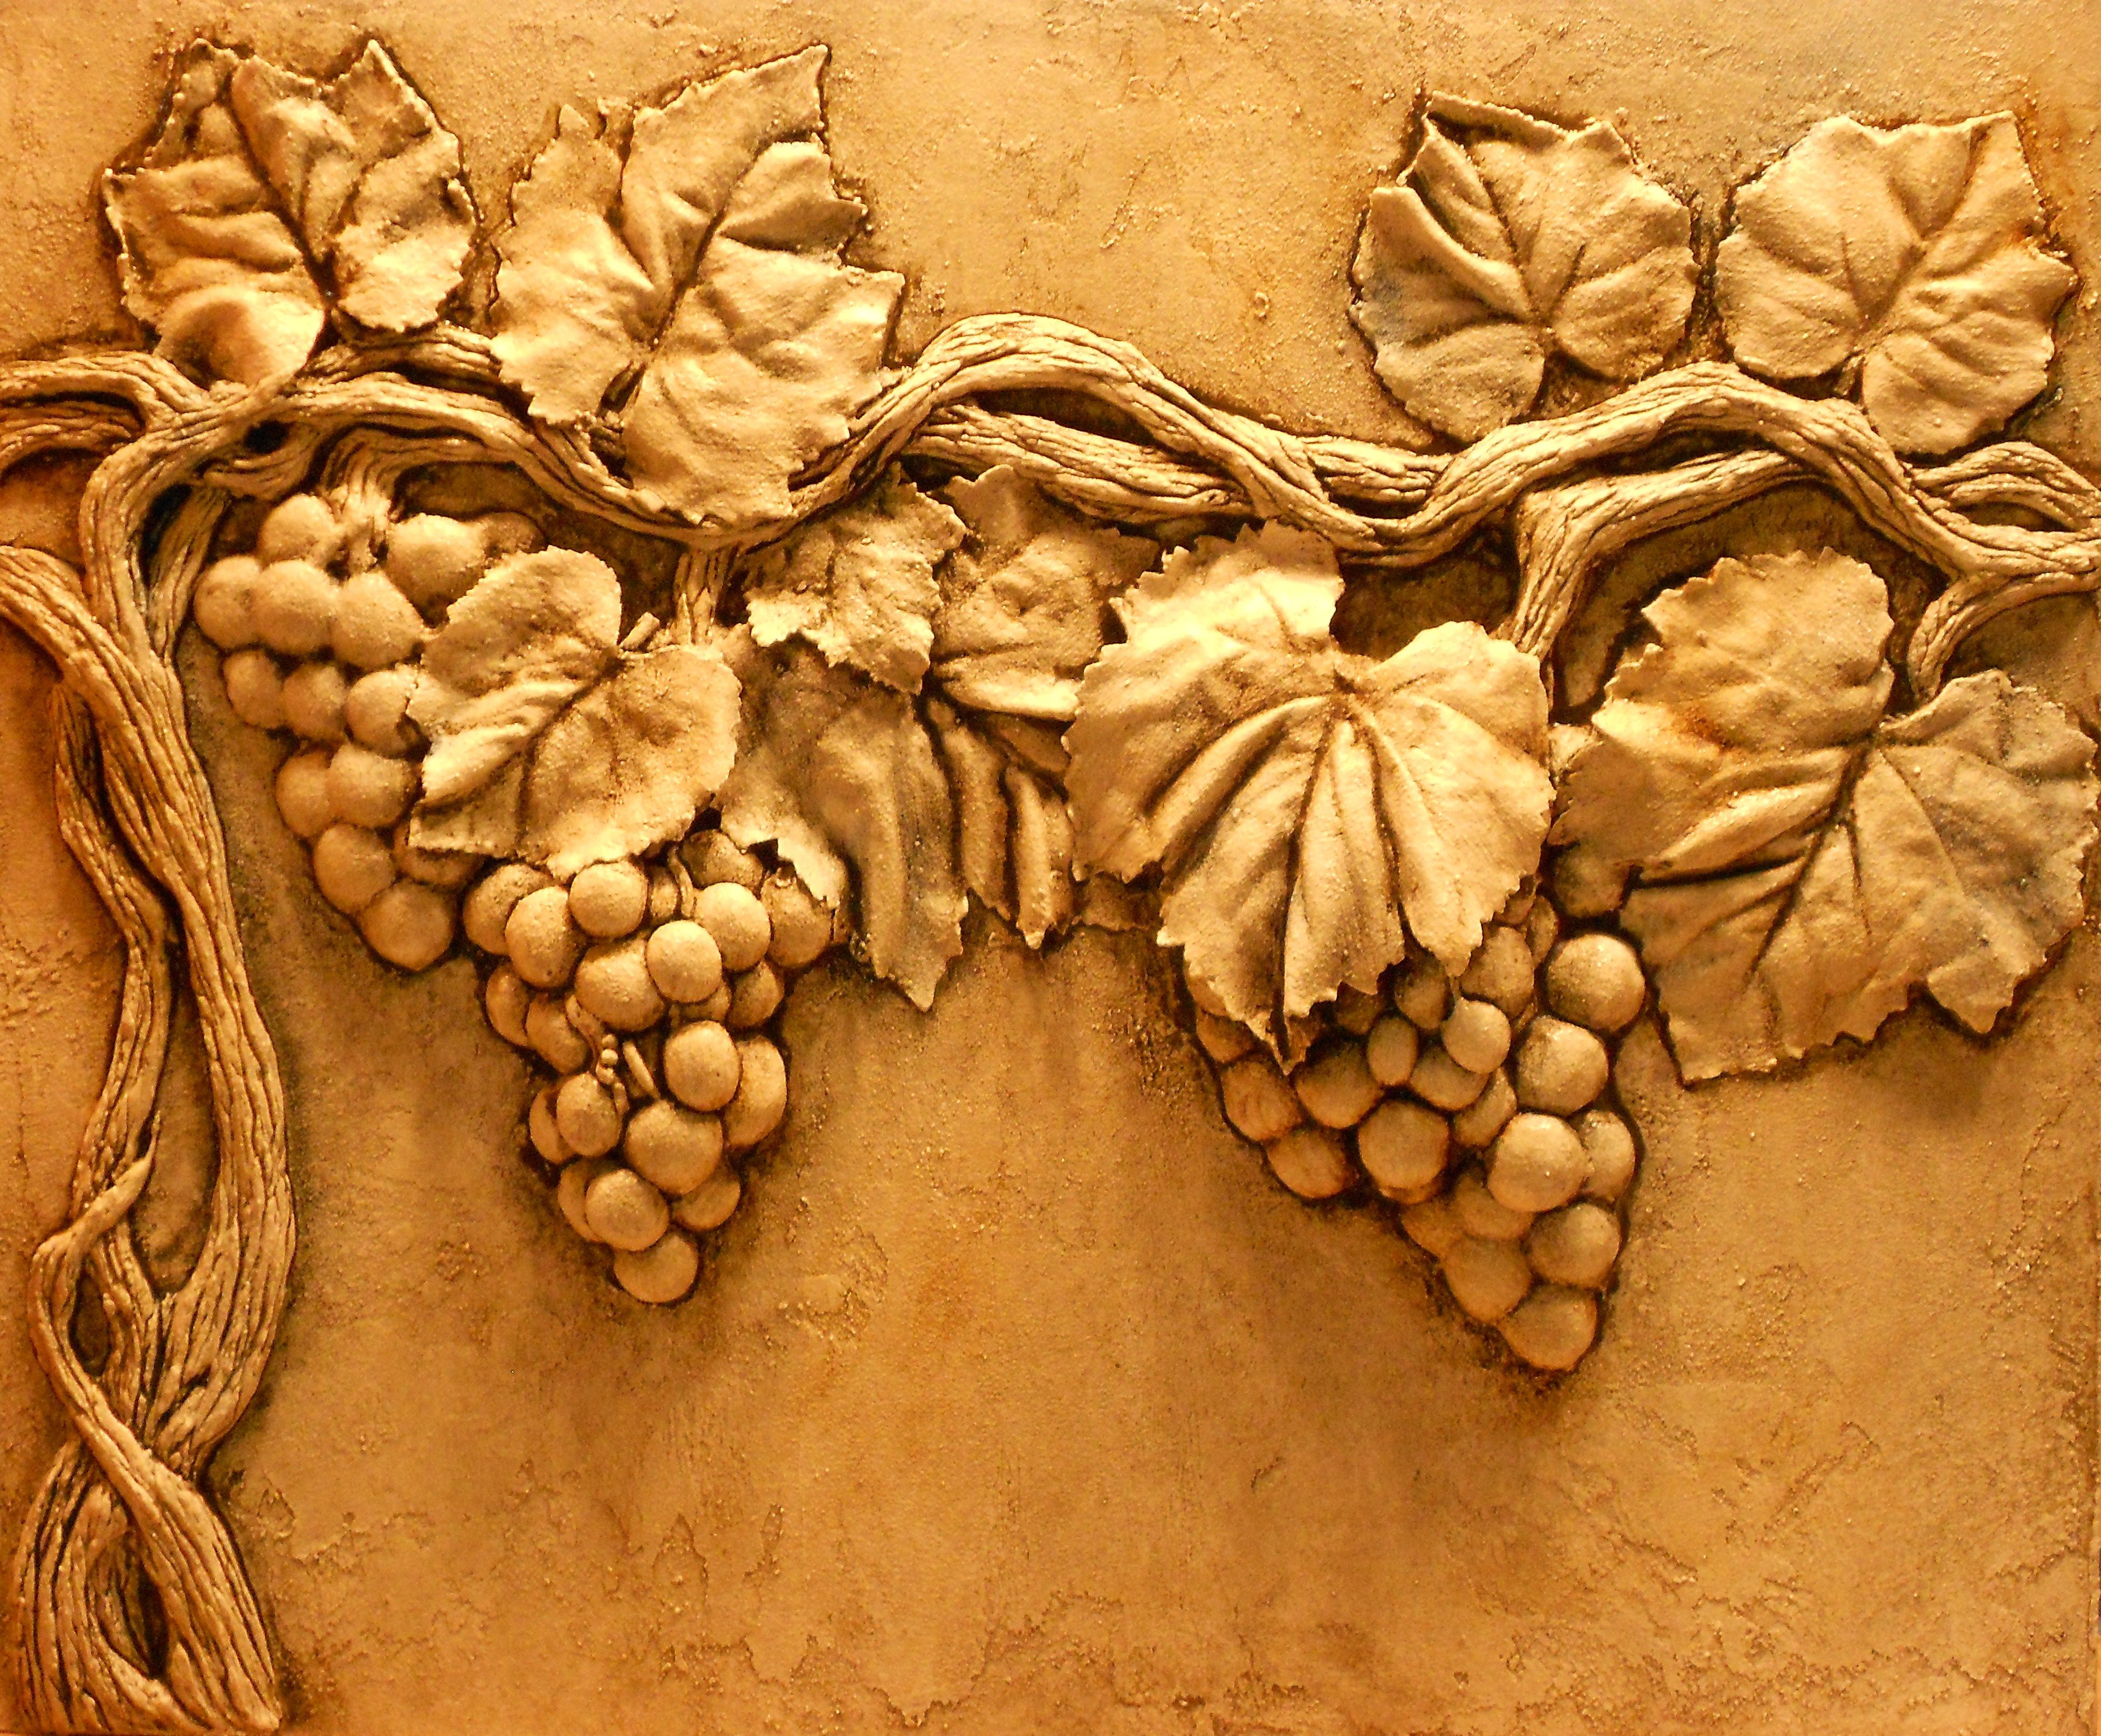 Architectural relief plaster high wall sculpture